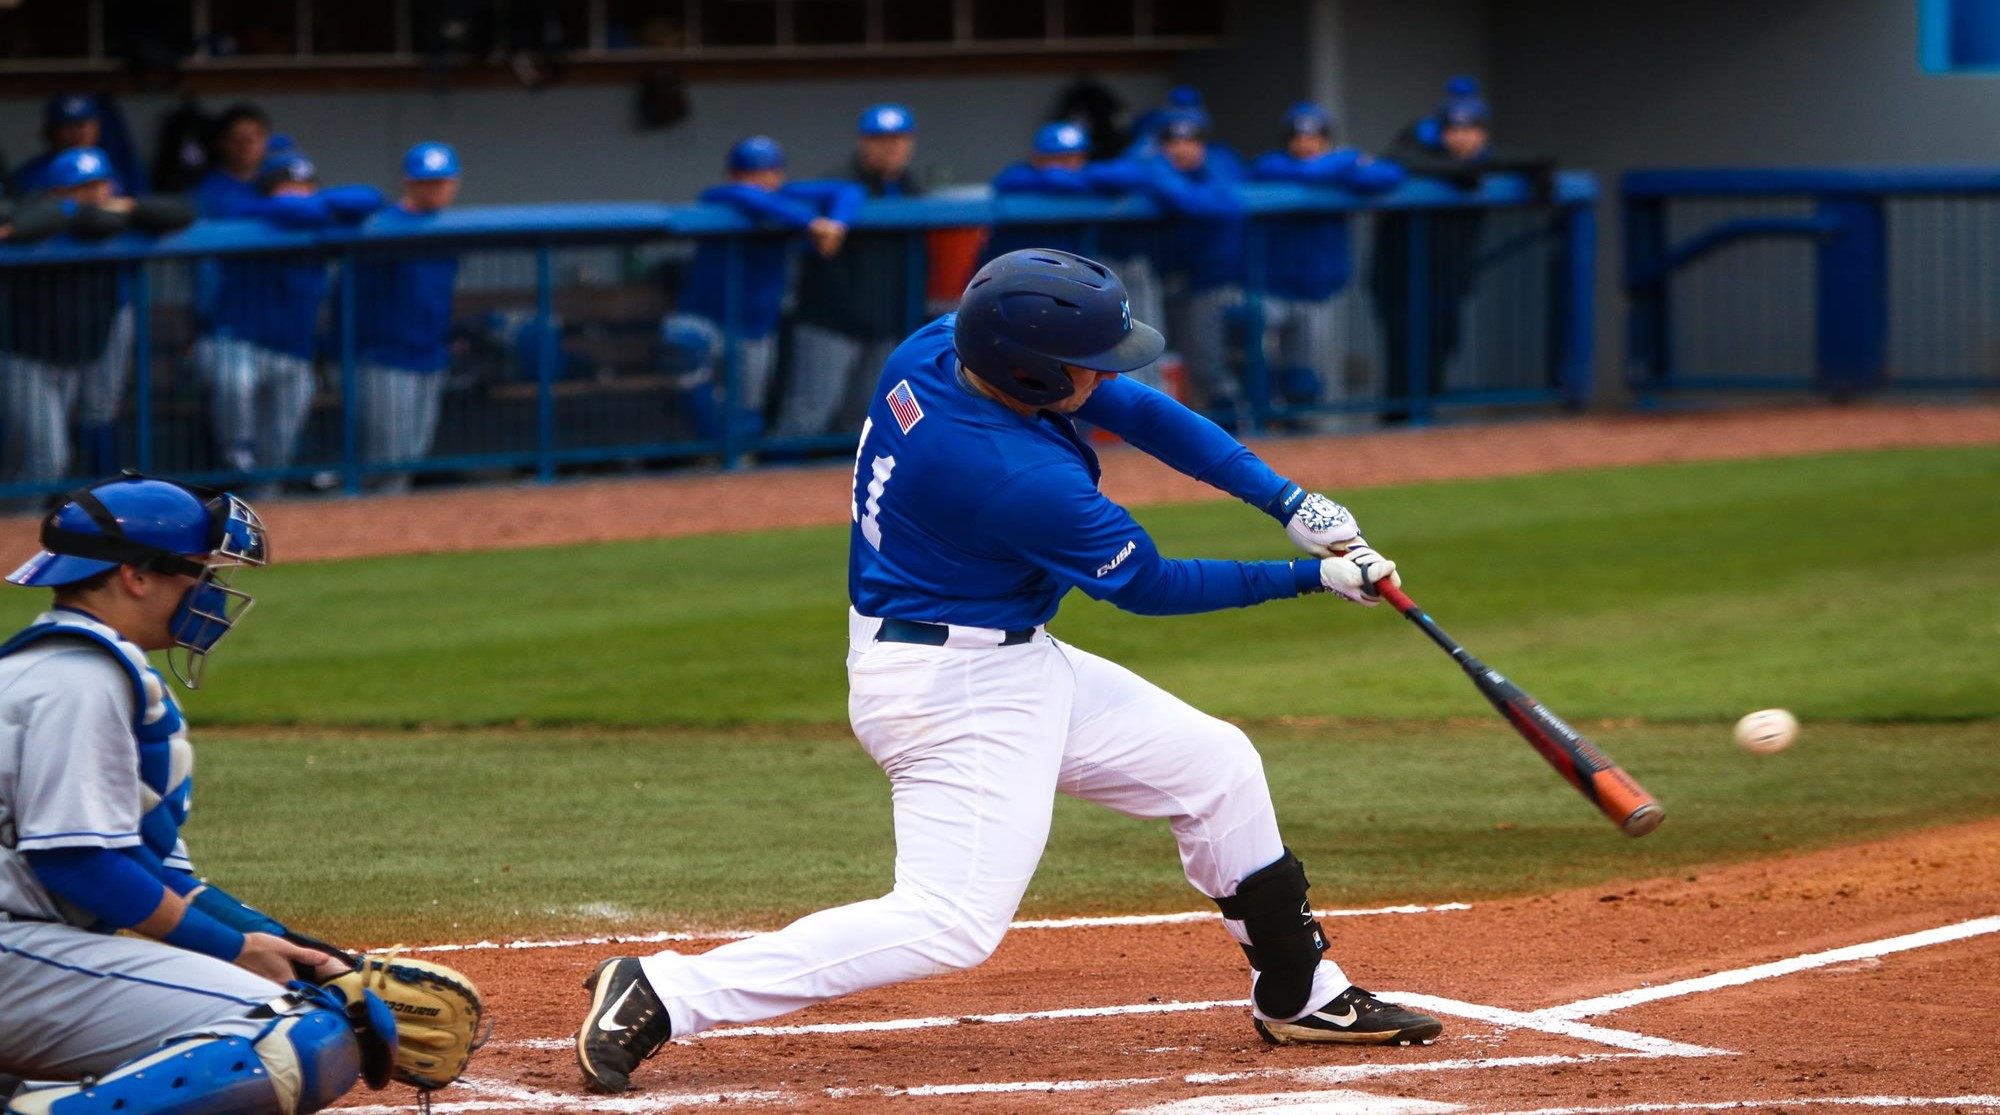 mt hosts rice for crucial c-usa series - middle tennessee state